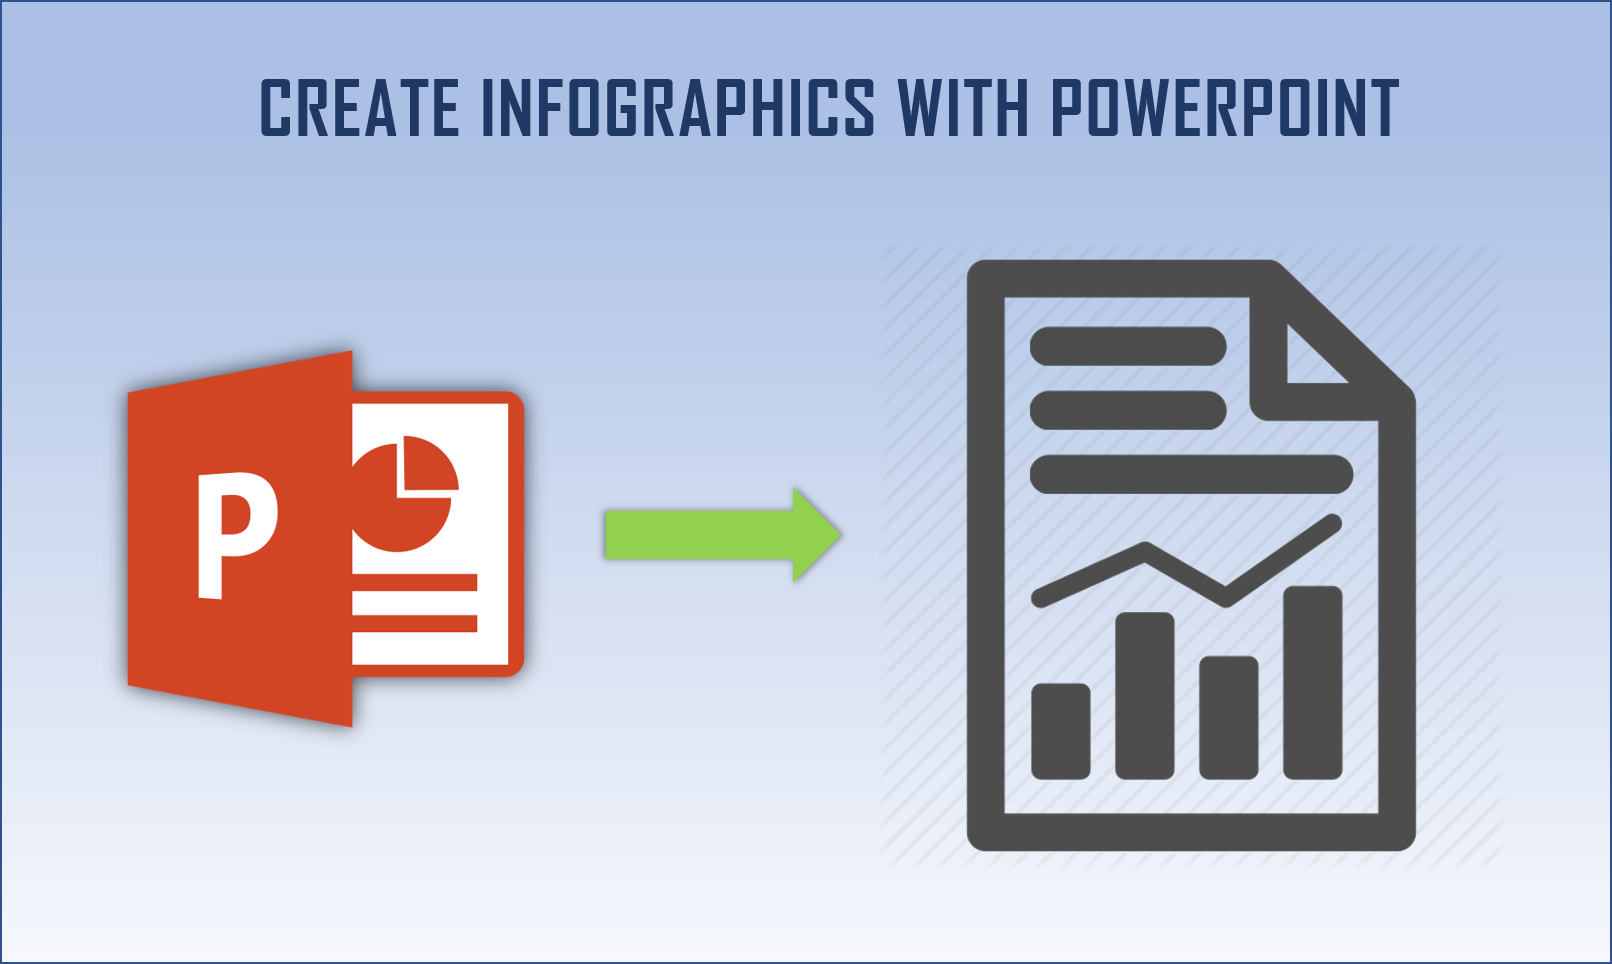 Create-infographics-featured-image